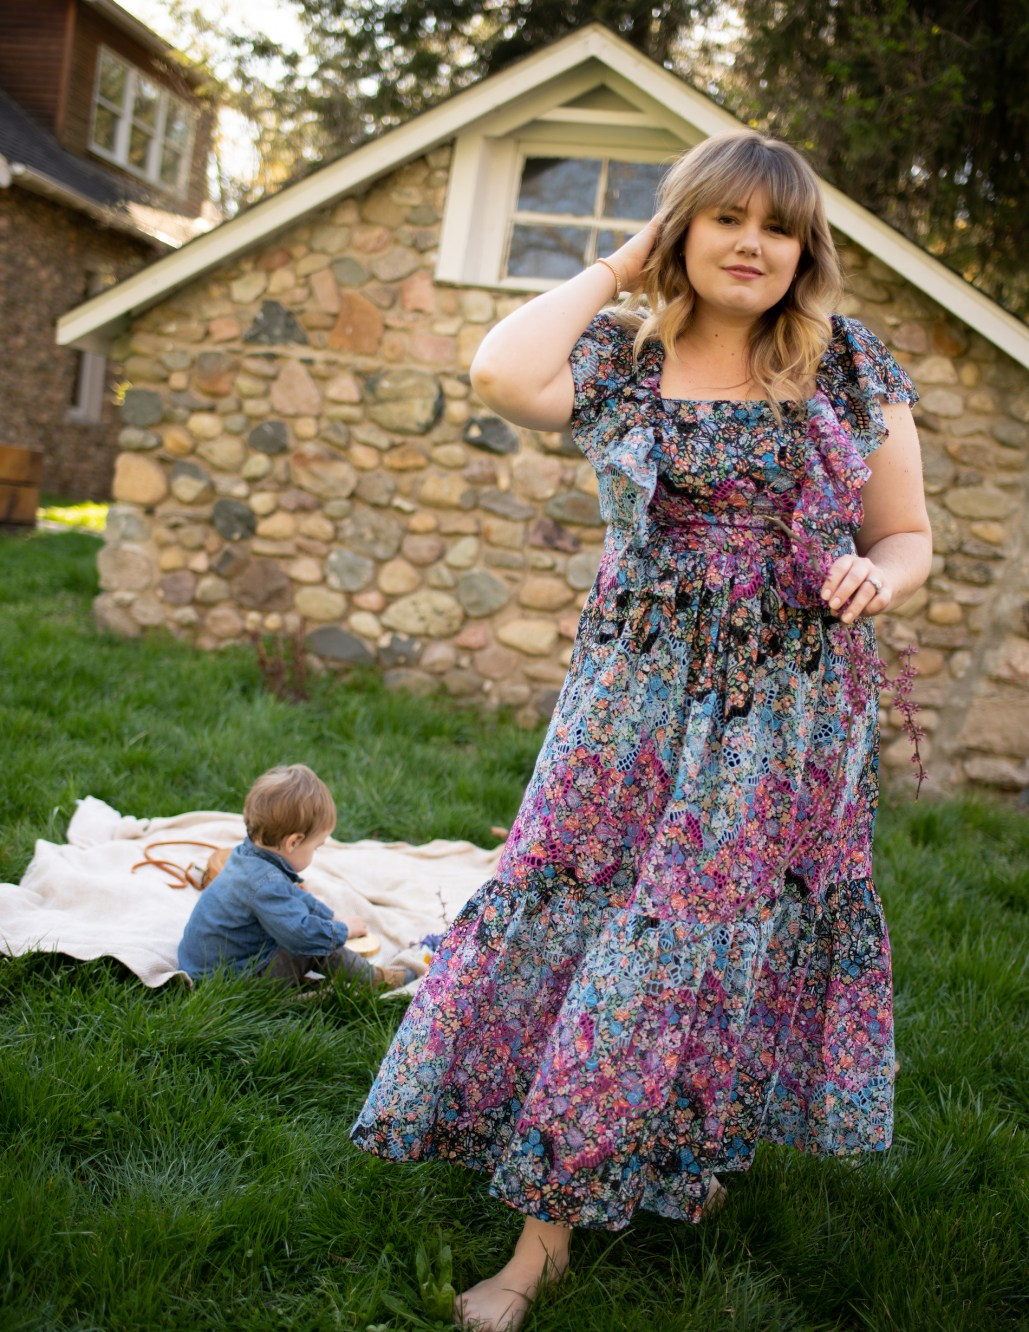 Mothers Day Gift Ideas. Sharing 15 different gift ideas for Mothers Day this year as well as this plus size dress from Anthropologie.